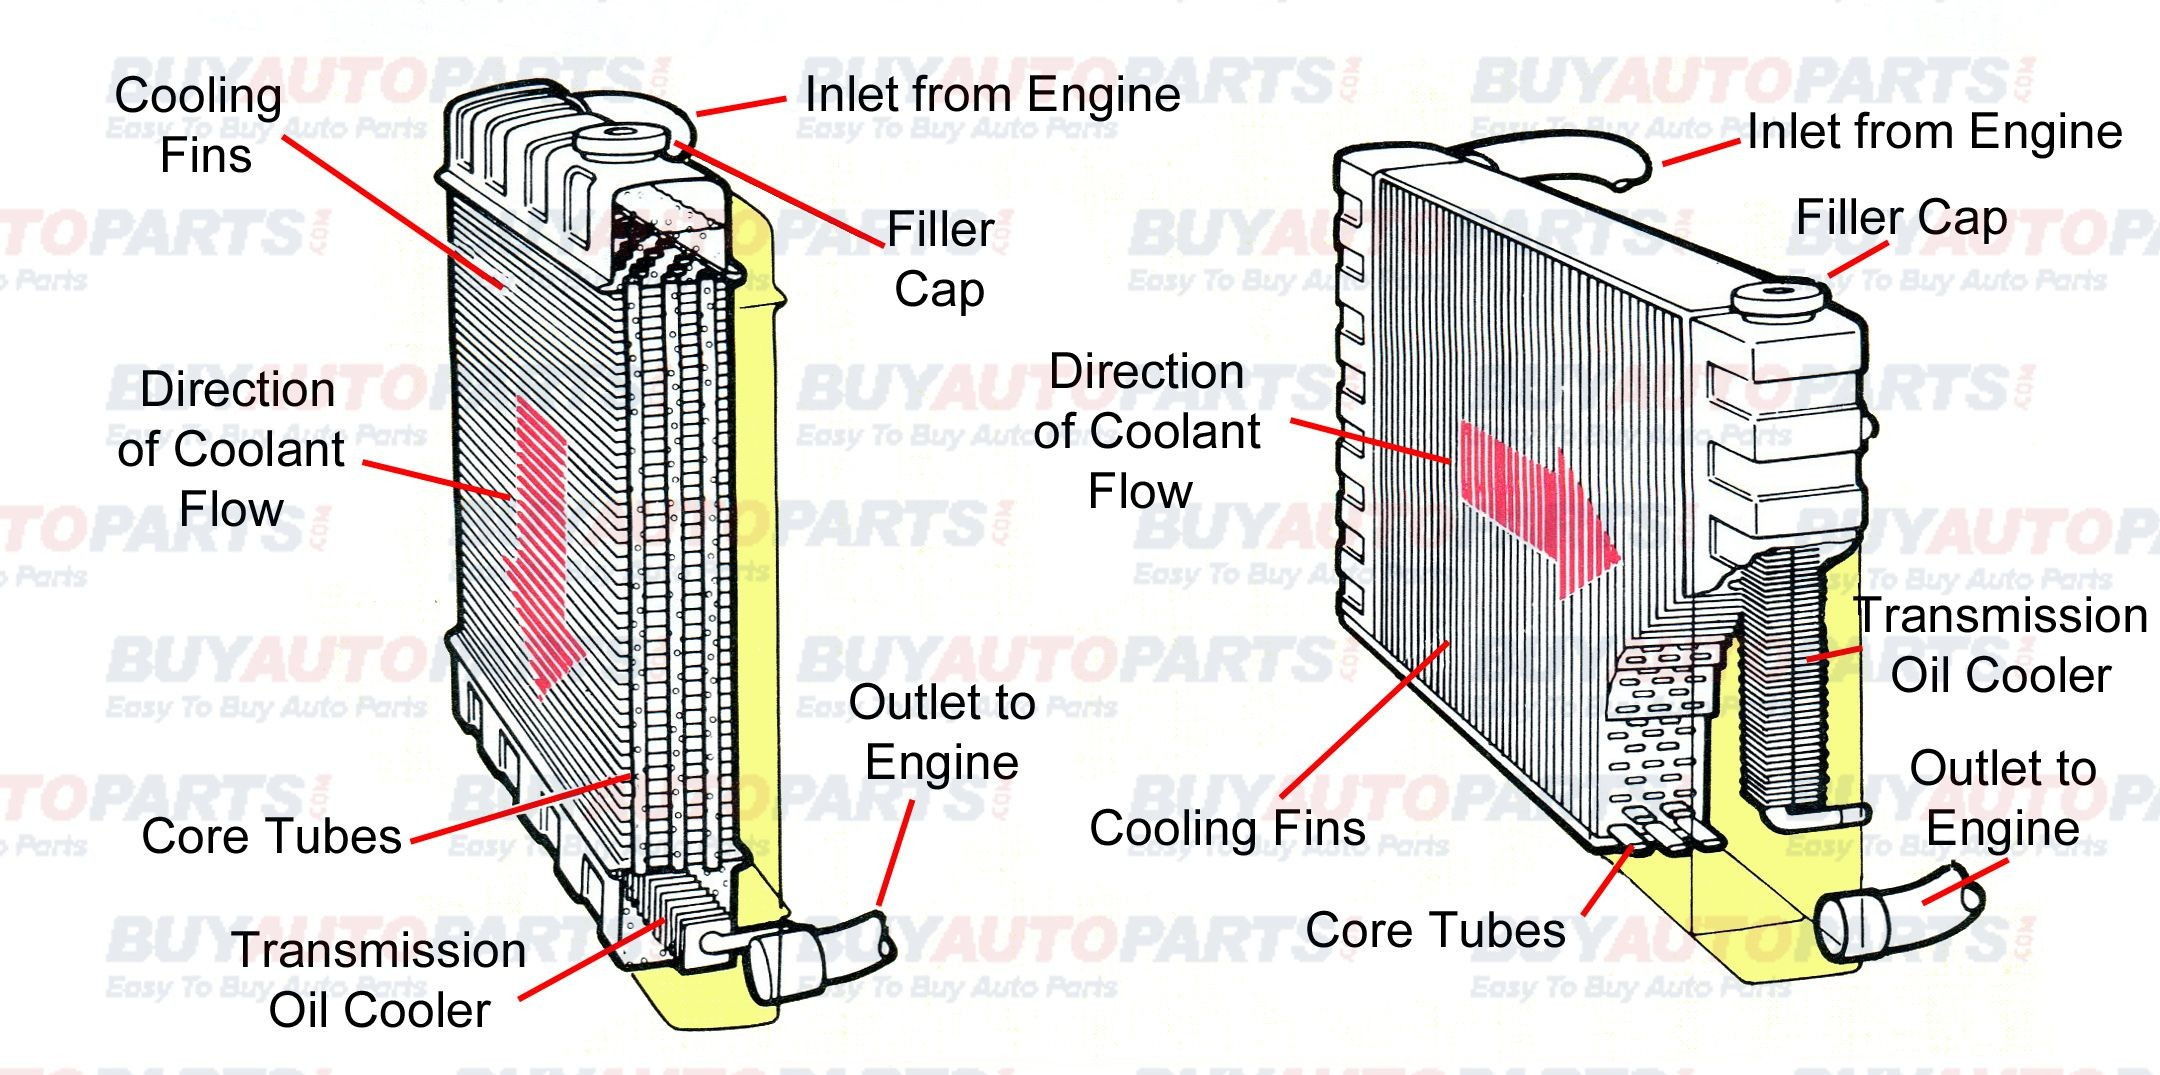 Diagram Of Radiator System the Coolant System is Not A Standalone Part Of the Car Instead It Of Diagram Of Radiator System